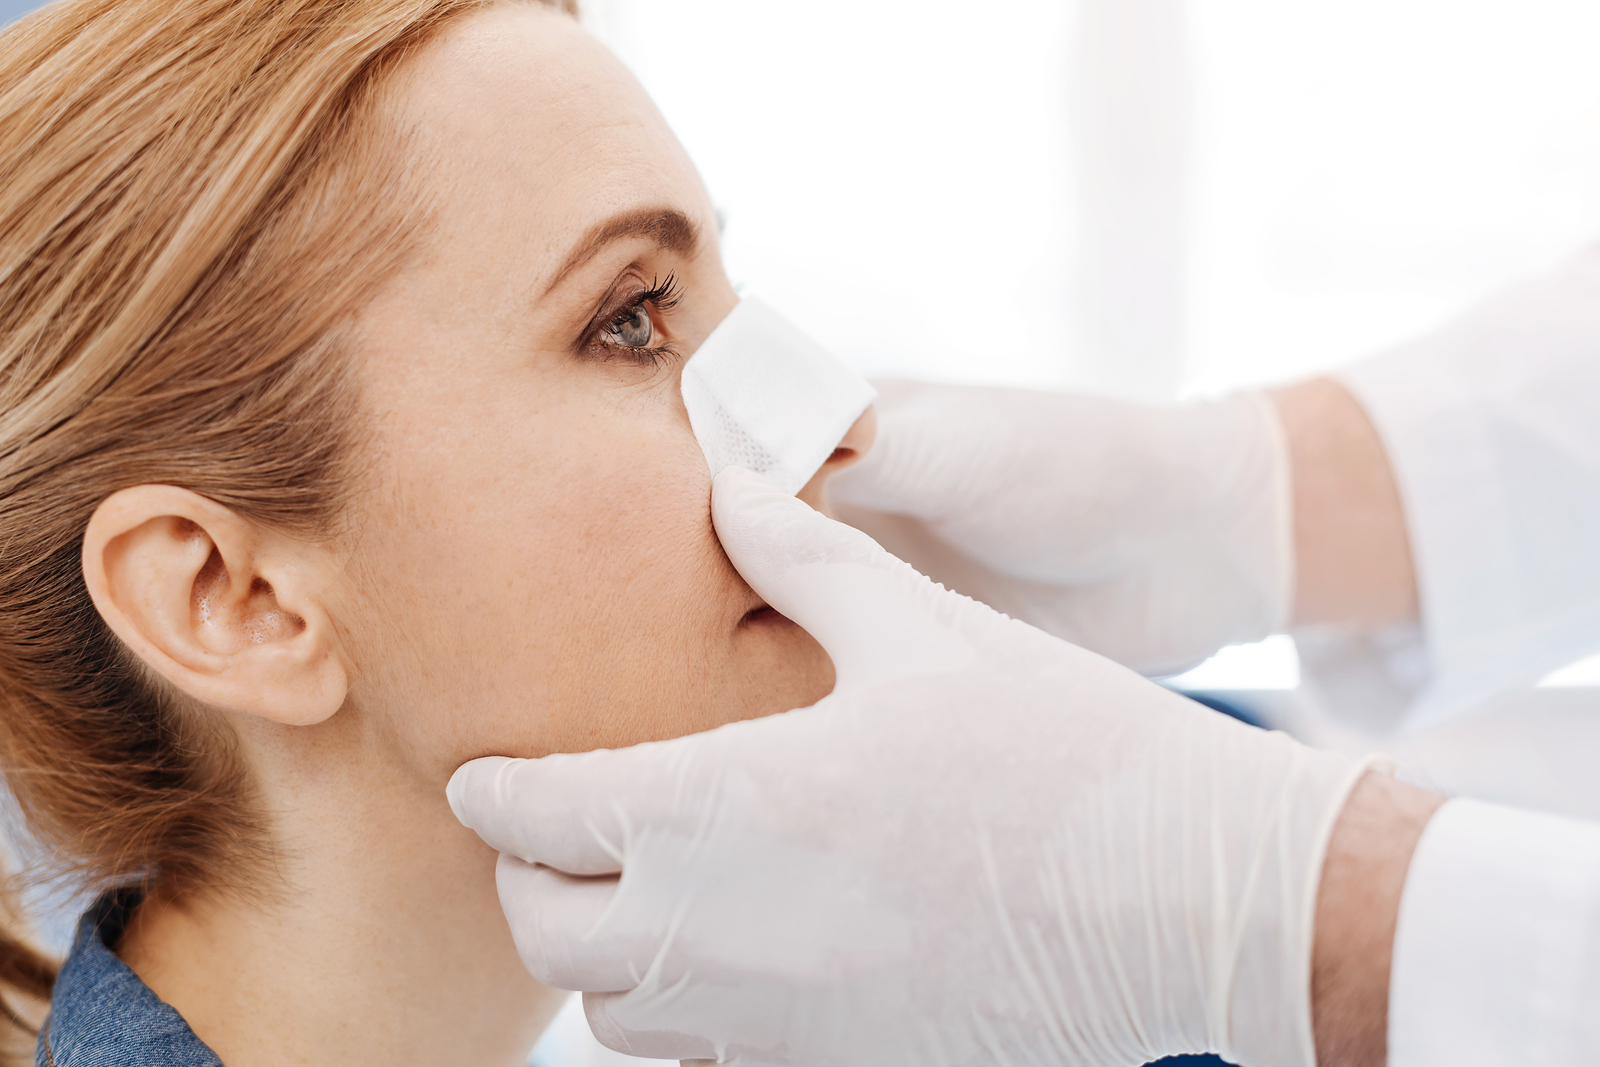 Rhinoplasty vs. Septoplasty: What's the Difference?